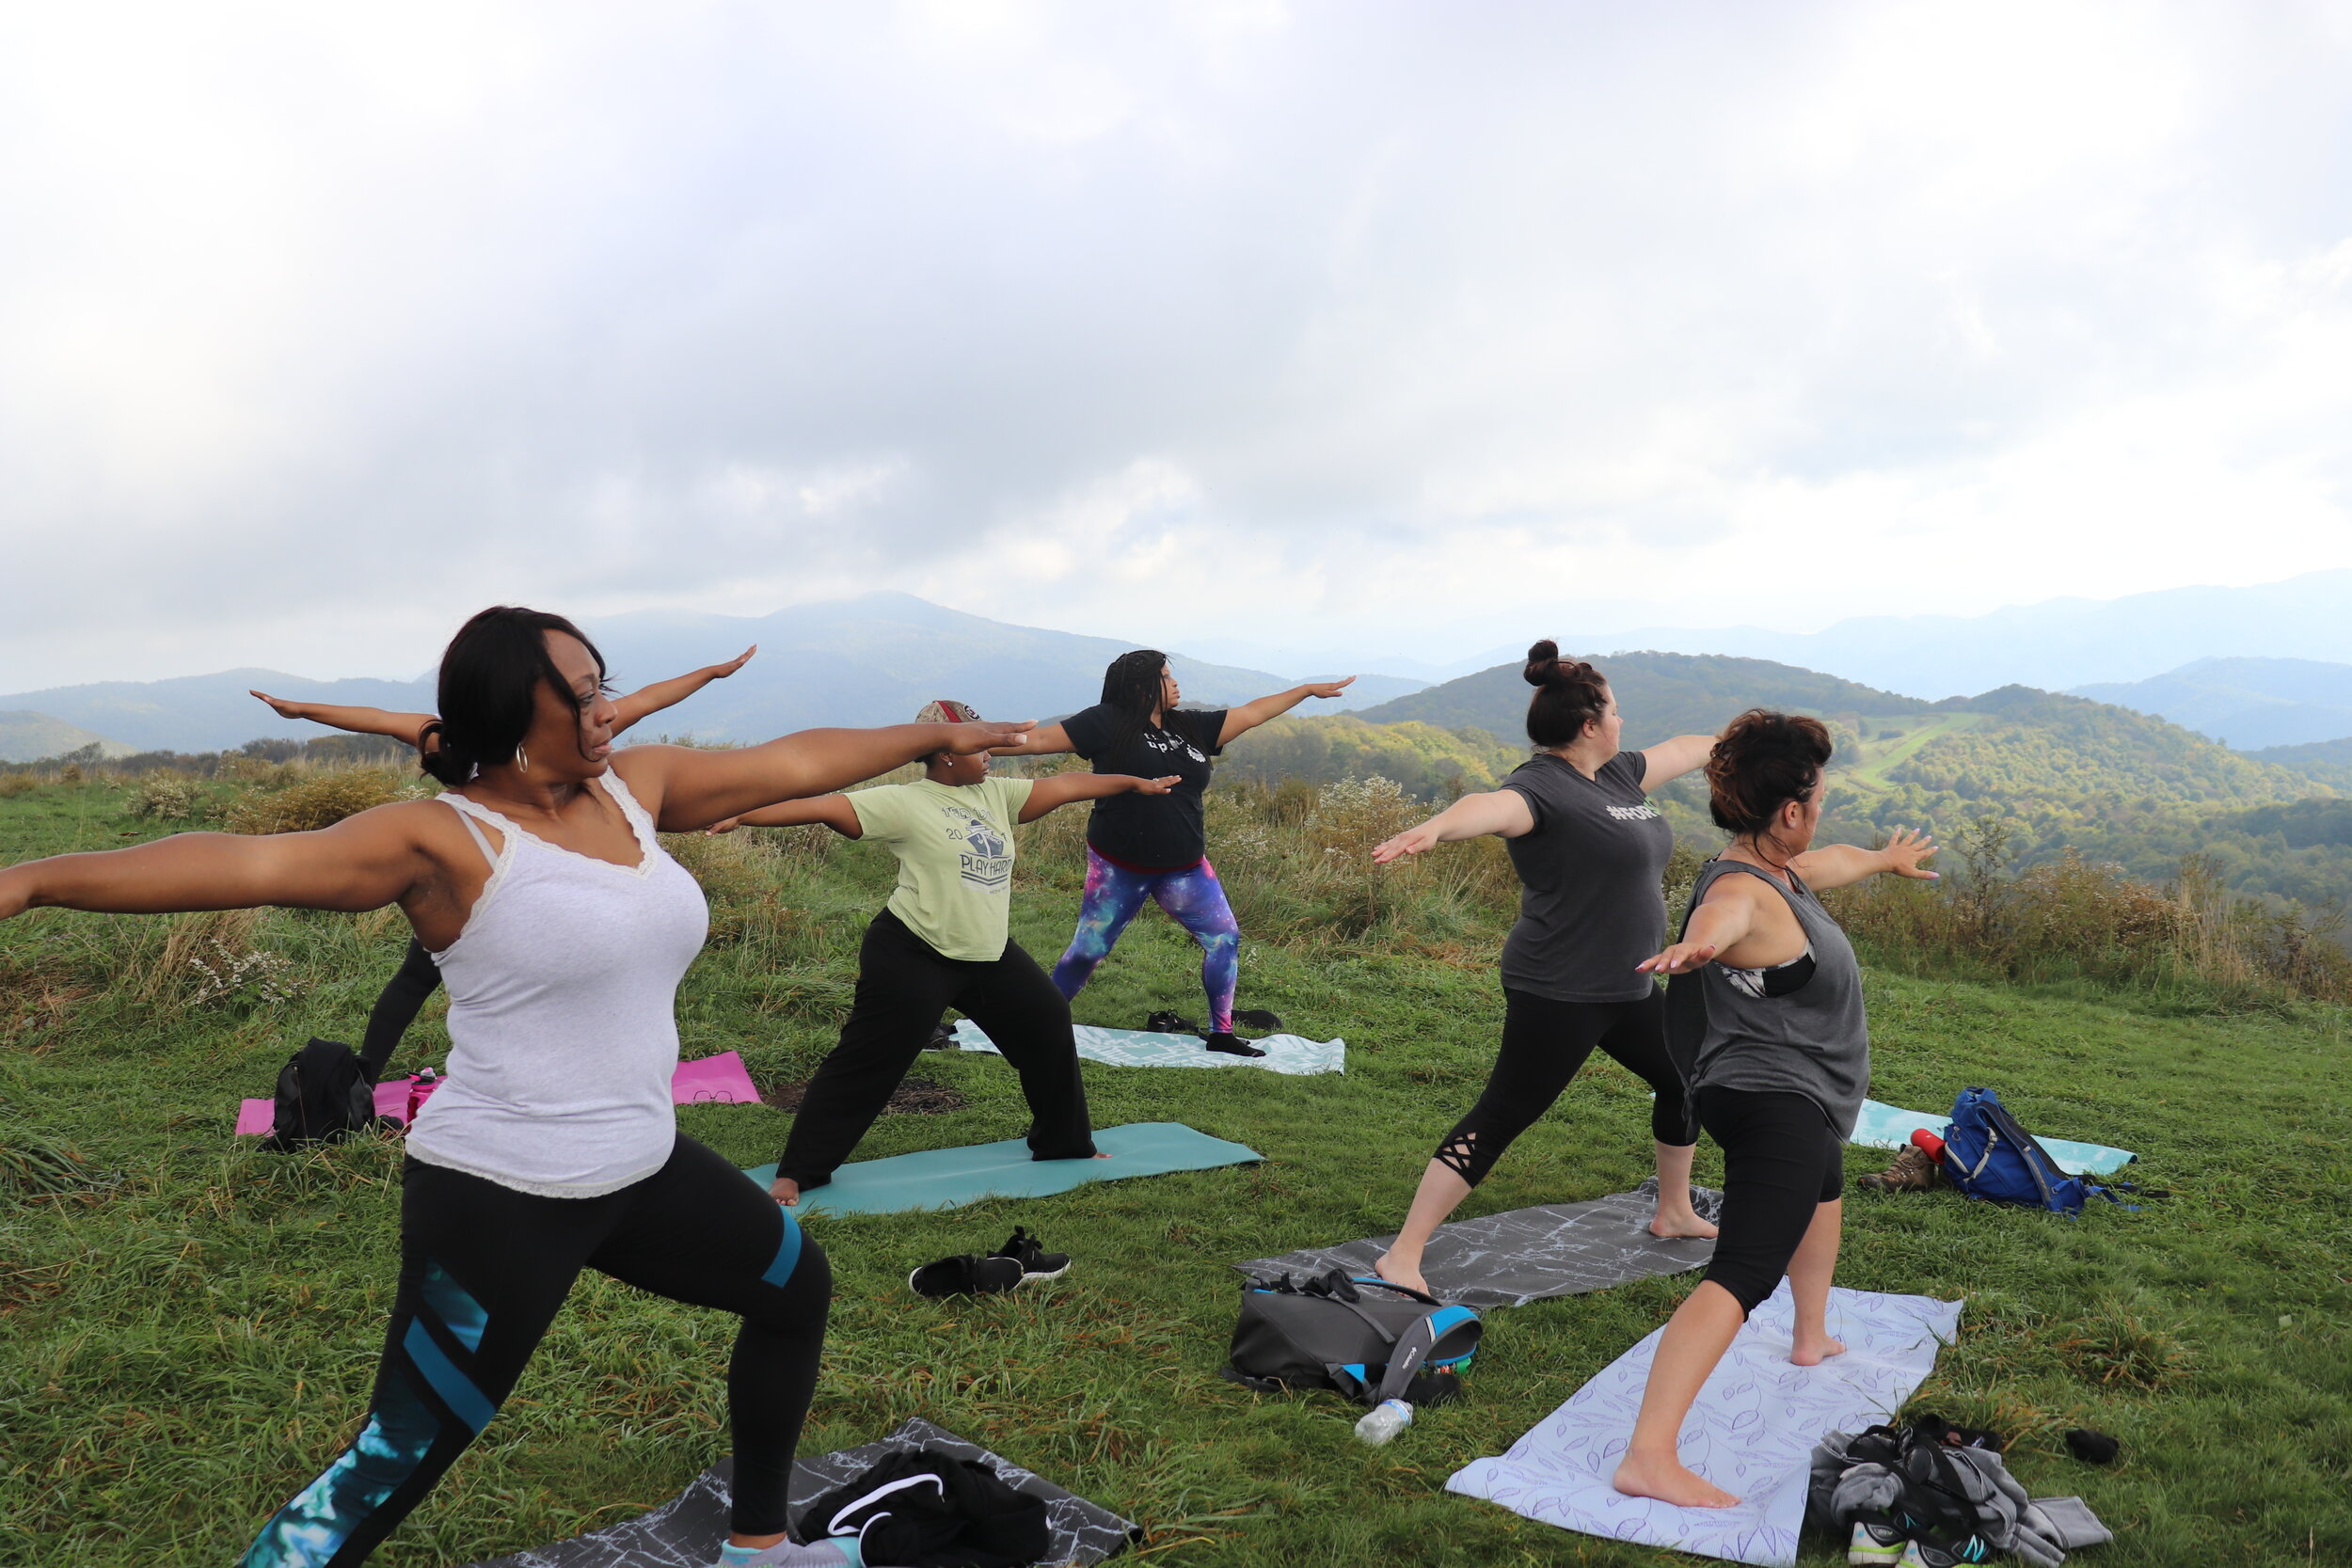 Doing yoga, hiking and meditating with your corporate or company team definitely beats sitting at your desk!